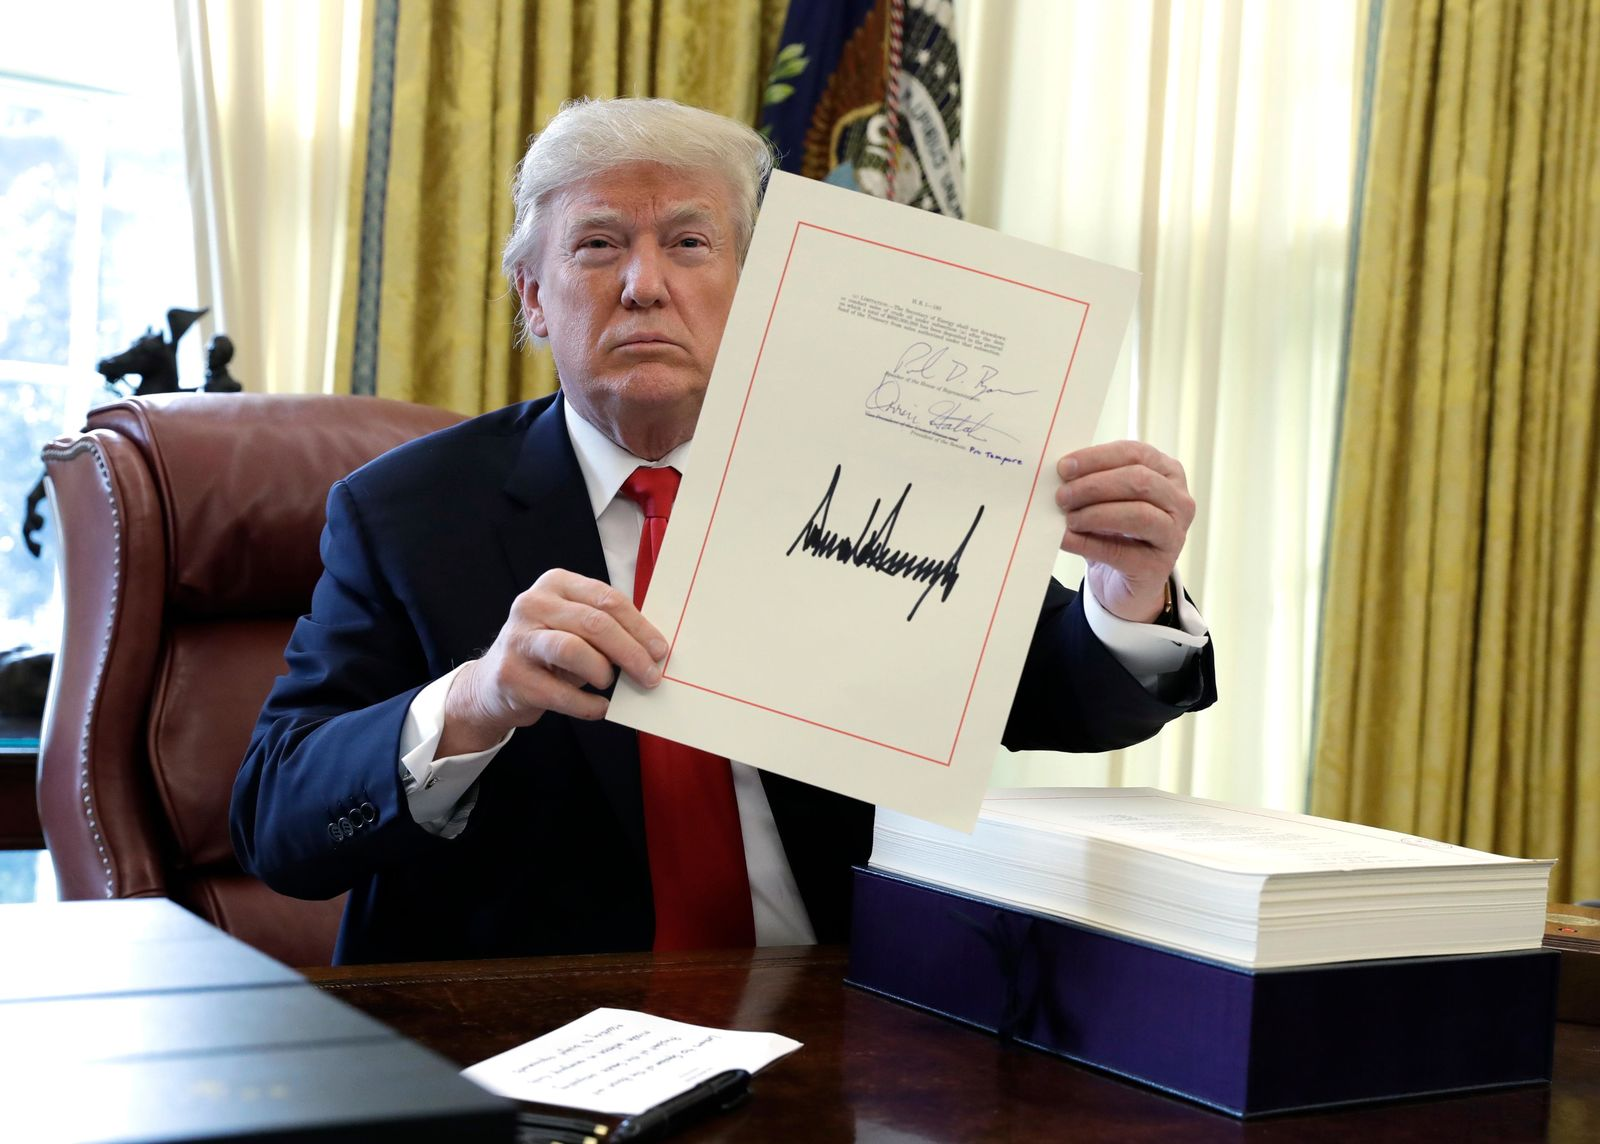 FILE - In this Dec. 22, 2017, file photo, President Donald Trump displays the $1.5 trillion tax overhaul package he signed in the Oval Office of the White House in Washington. Trump is now three for three. Each year of his presidency, he has issued more executive orders than did former President Barack Obama during the same time-span. (AP Photo/Evan Vucci, File)